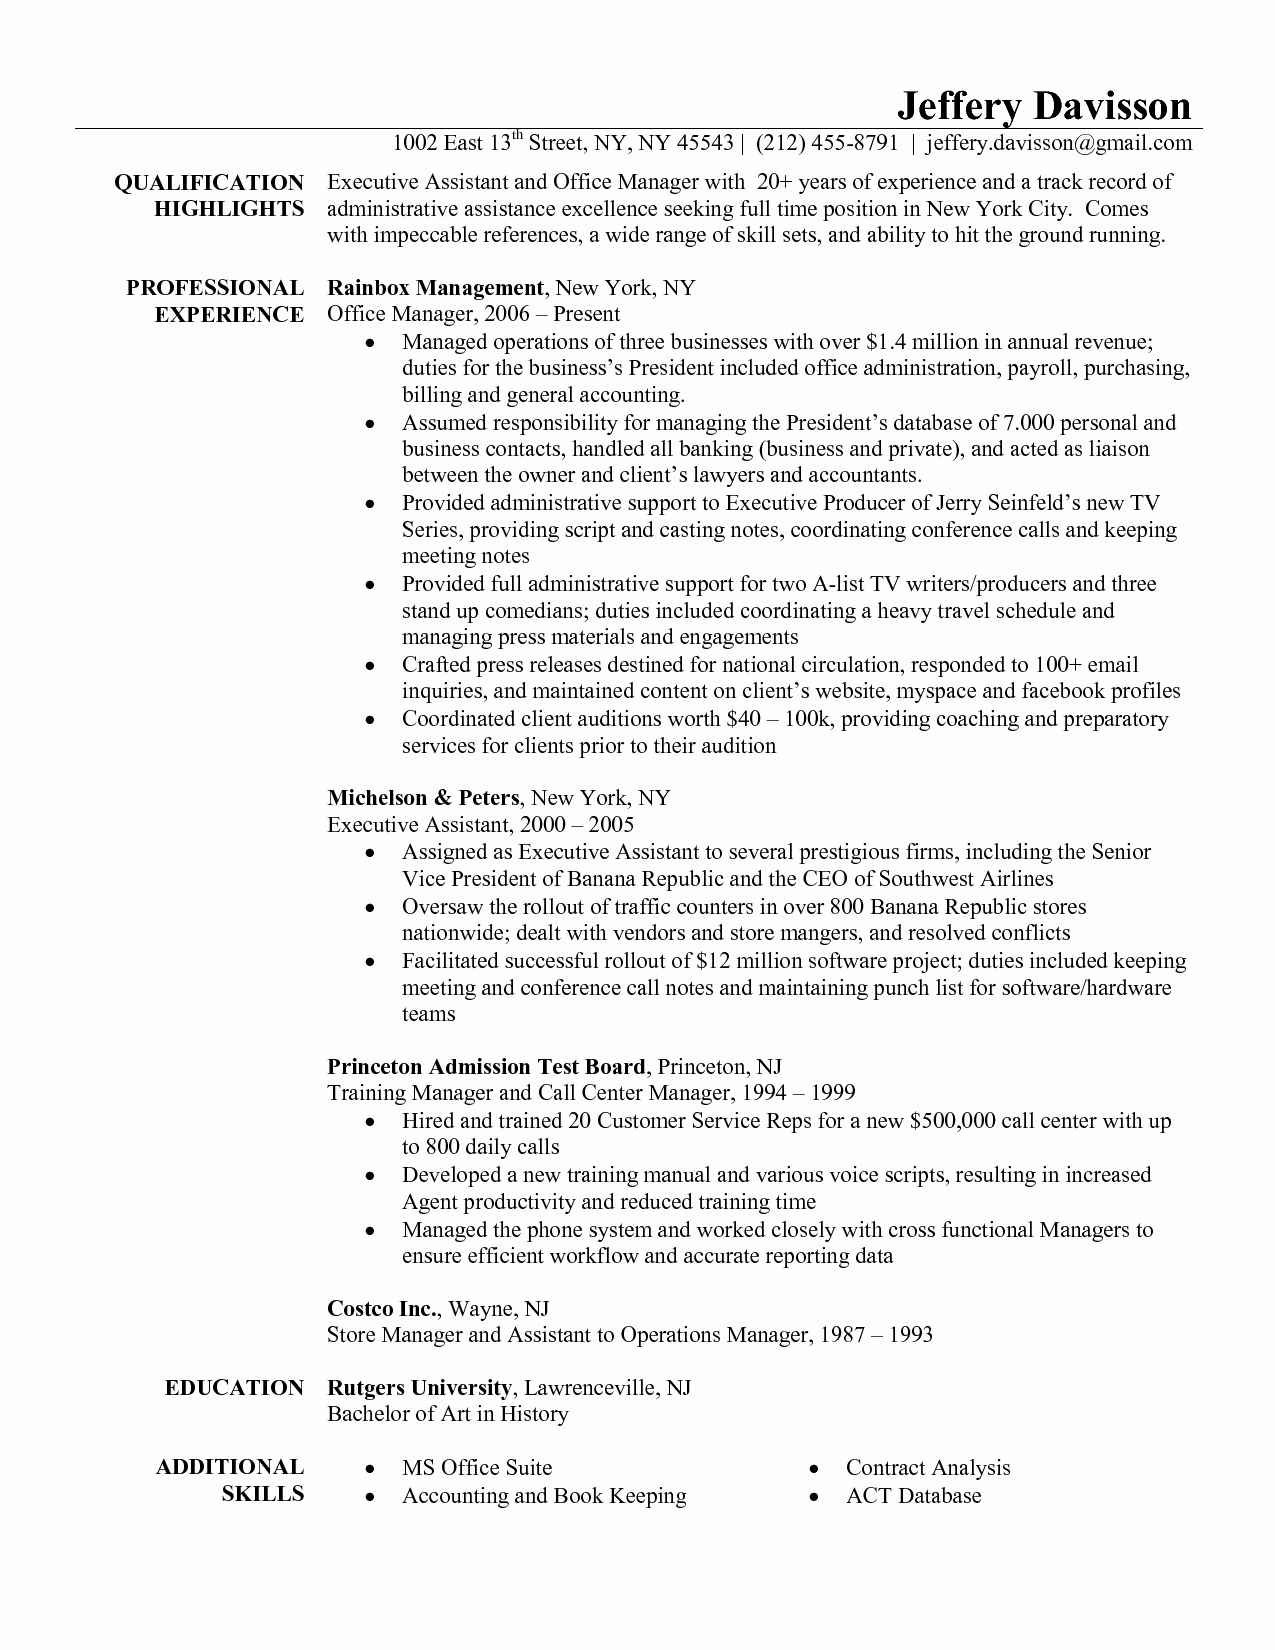 Resume for Medical Office Manager - Medical Fice Manager Resume Samples Valid Resume for Fice Manager